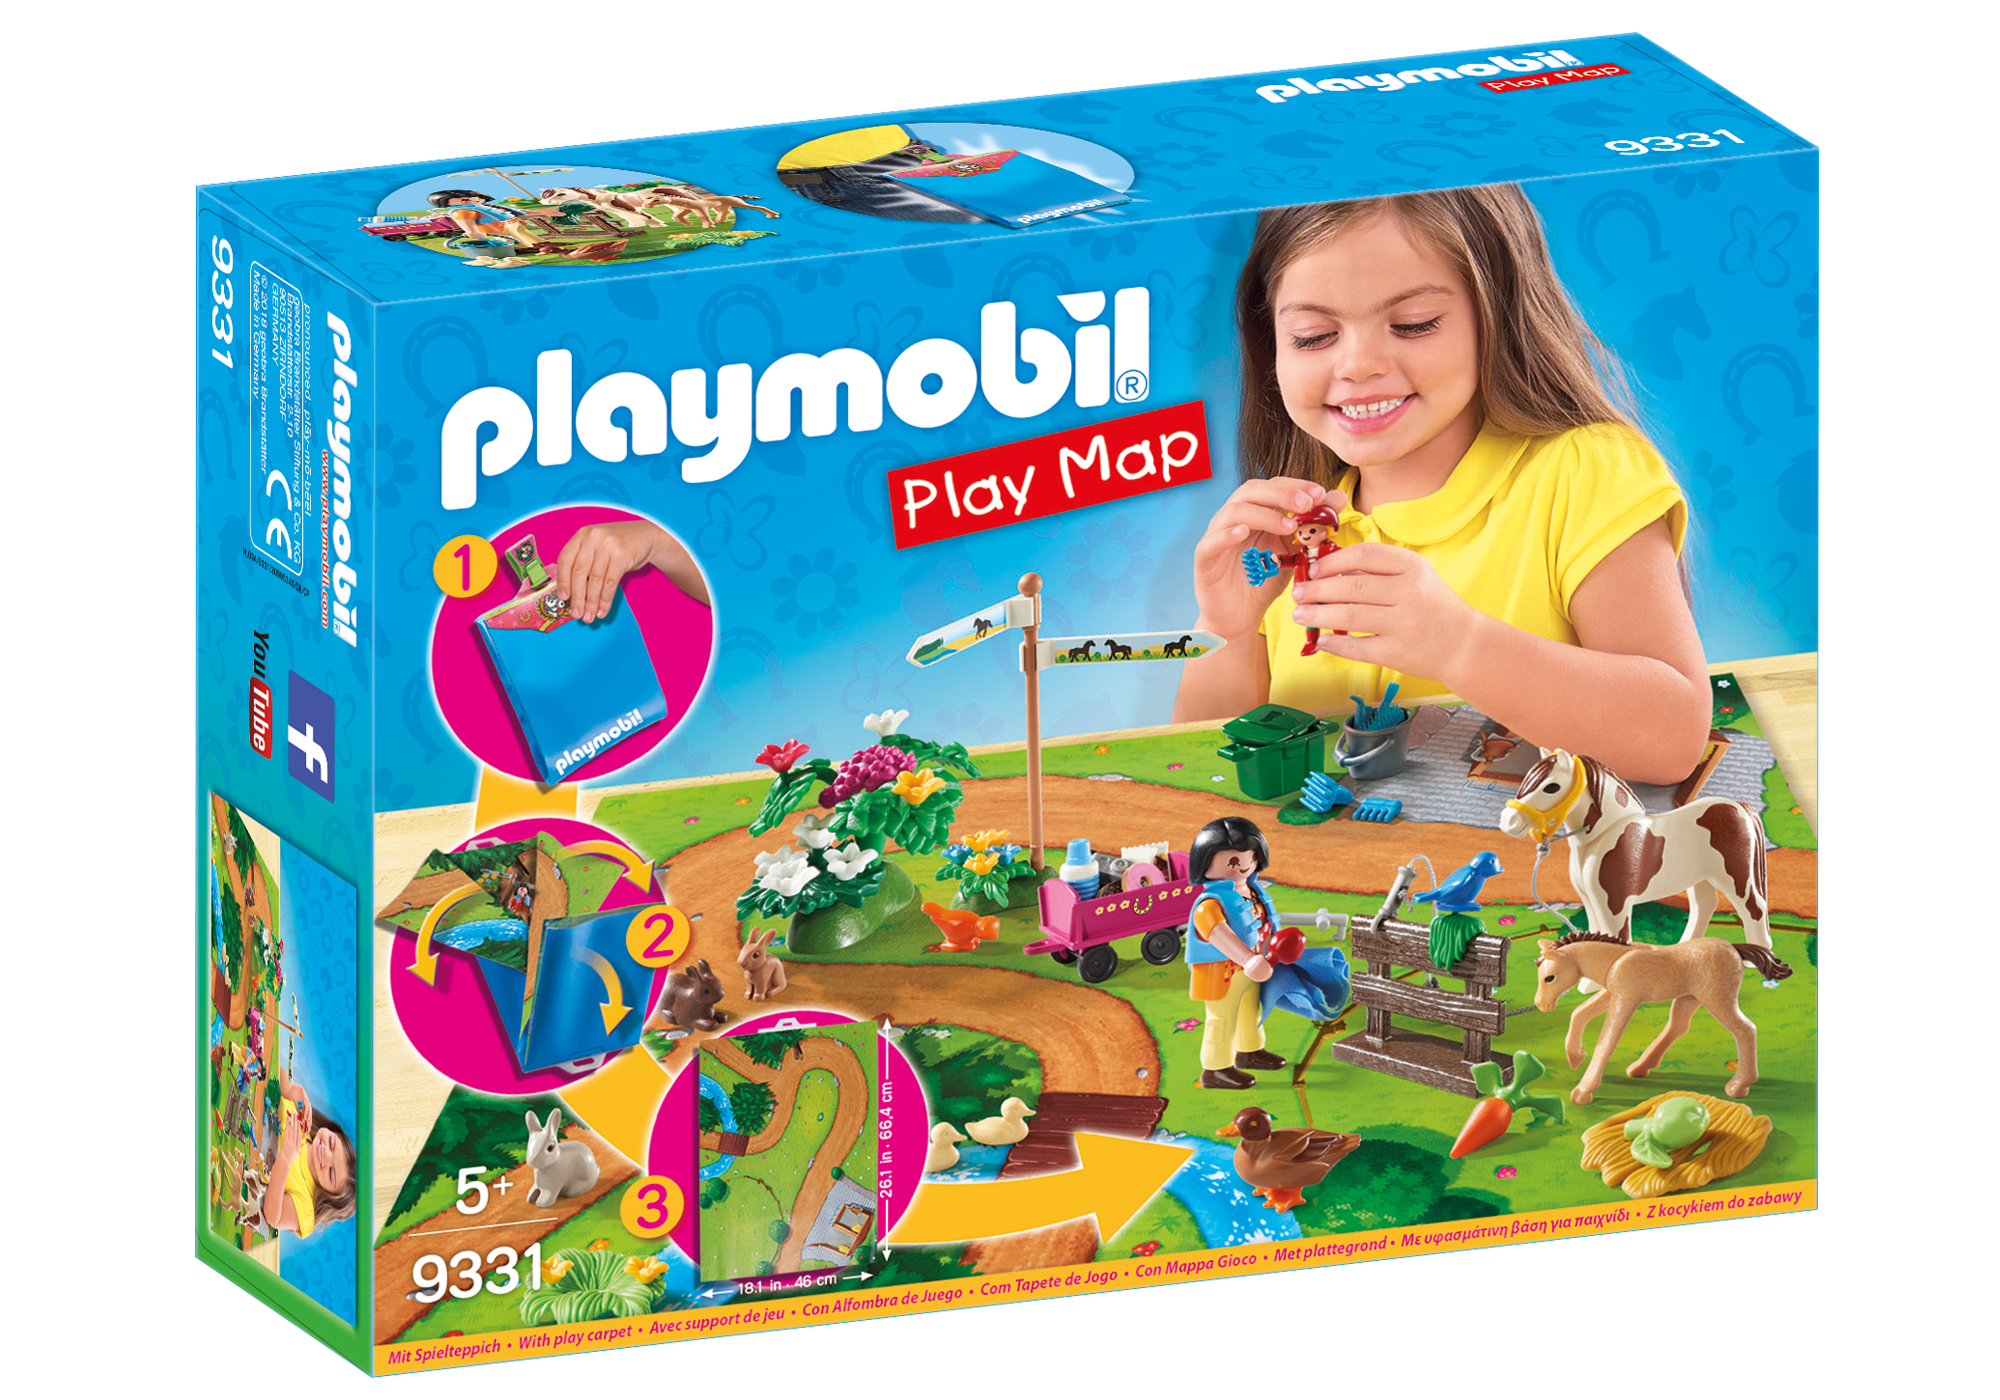 http://media.playmobil.com/i/playmobil/9331_product_box_front/Play Map - Passeggiata a cavallo